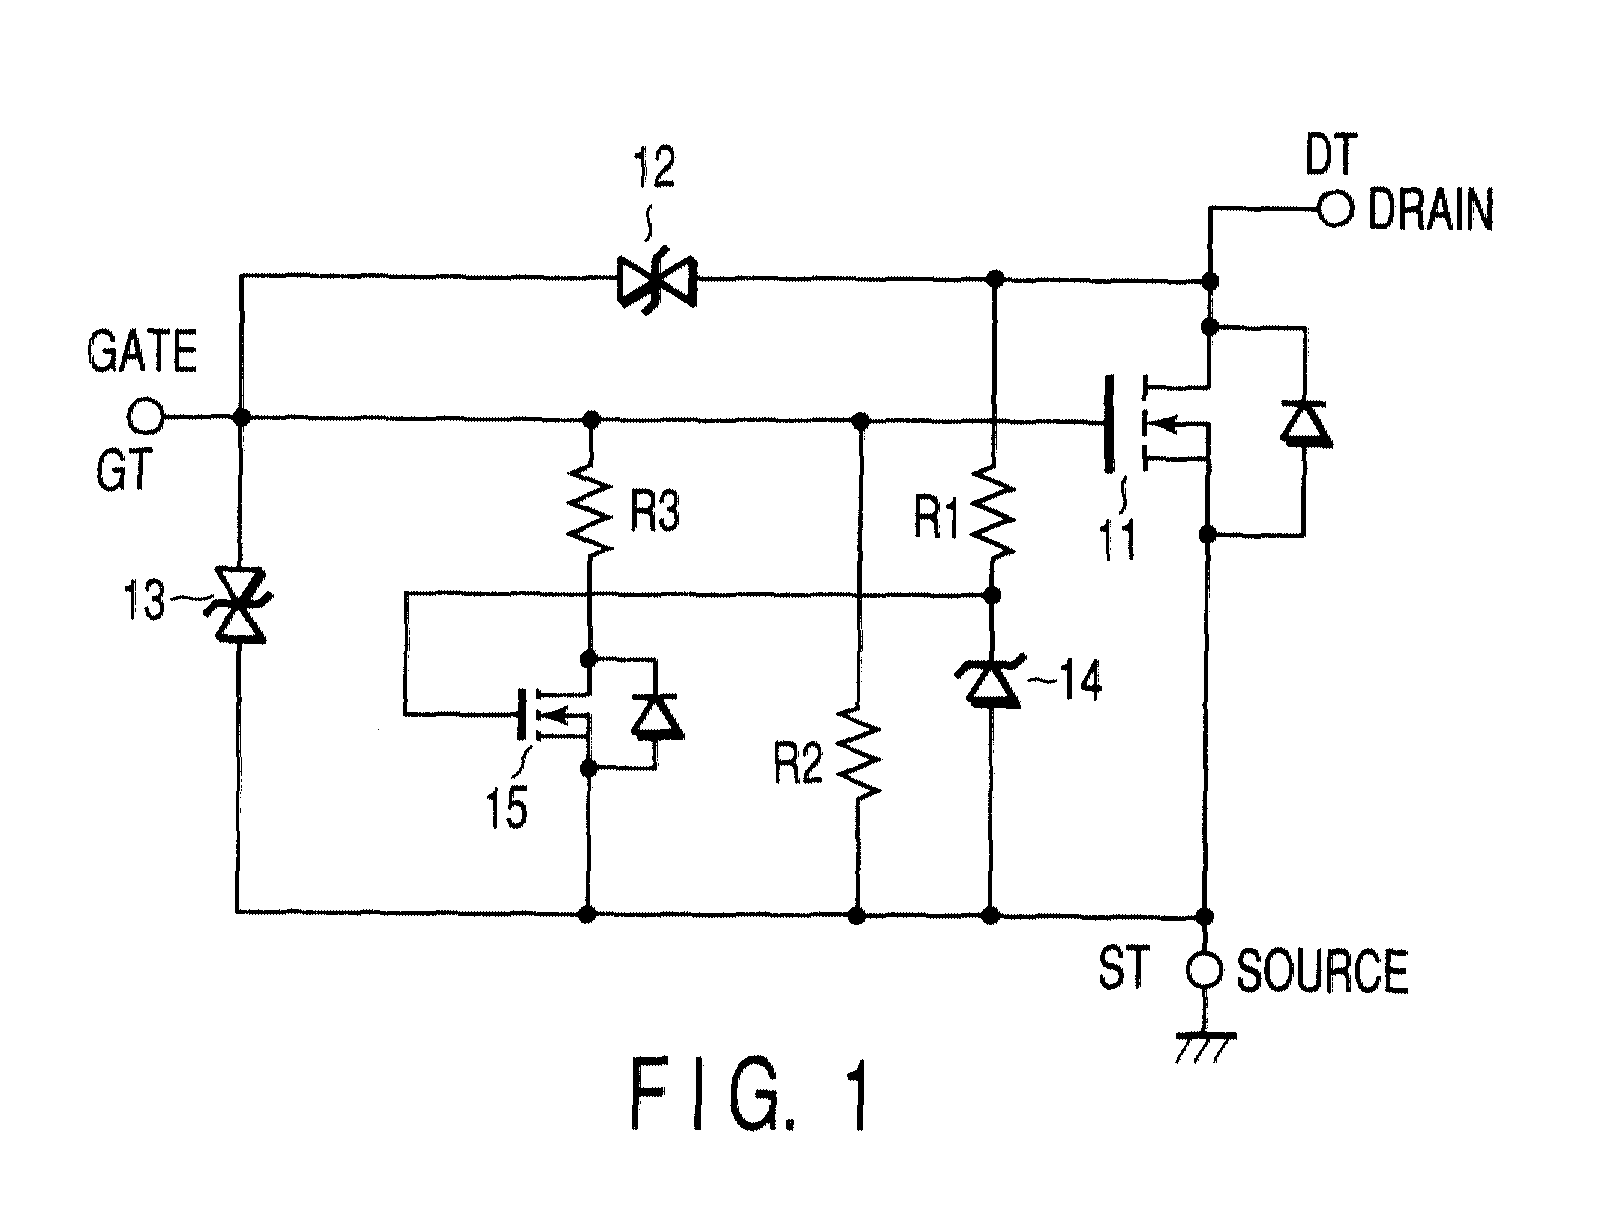 Ep1137068a2 Power Semiconductor Device Having A Protection Circuit Diagram Zener Diode Characteristics Figure 00000001